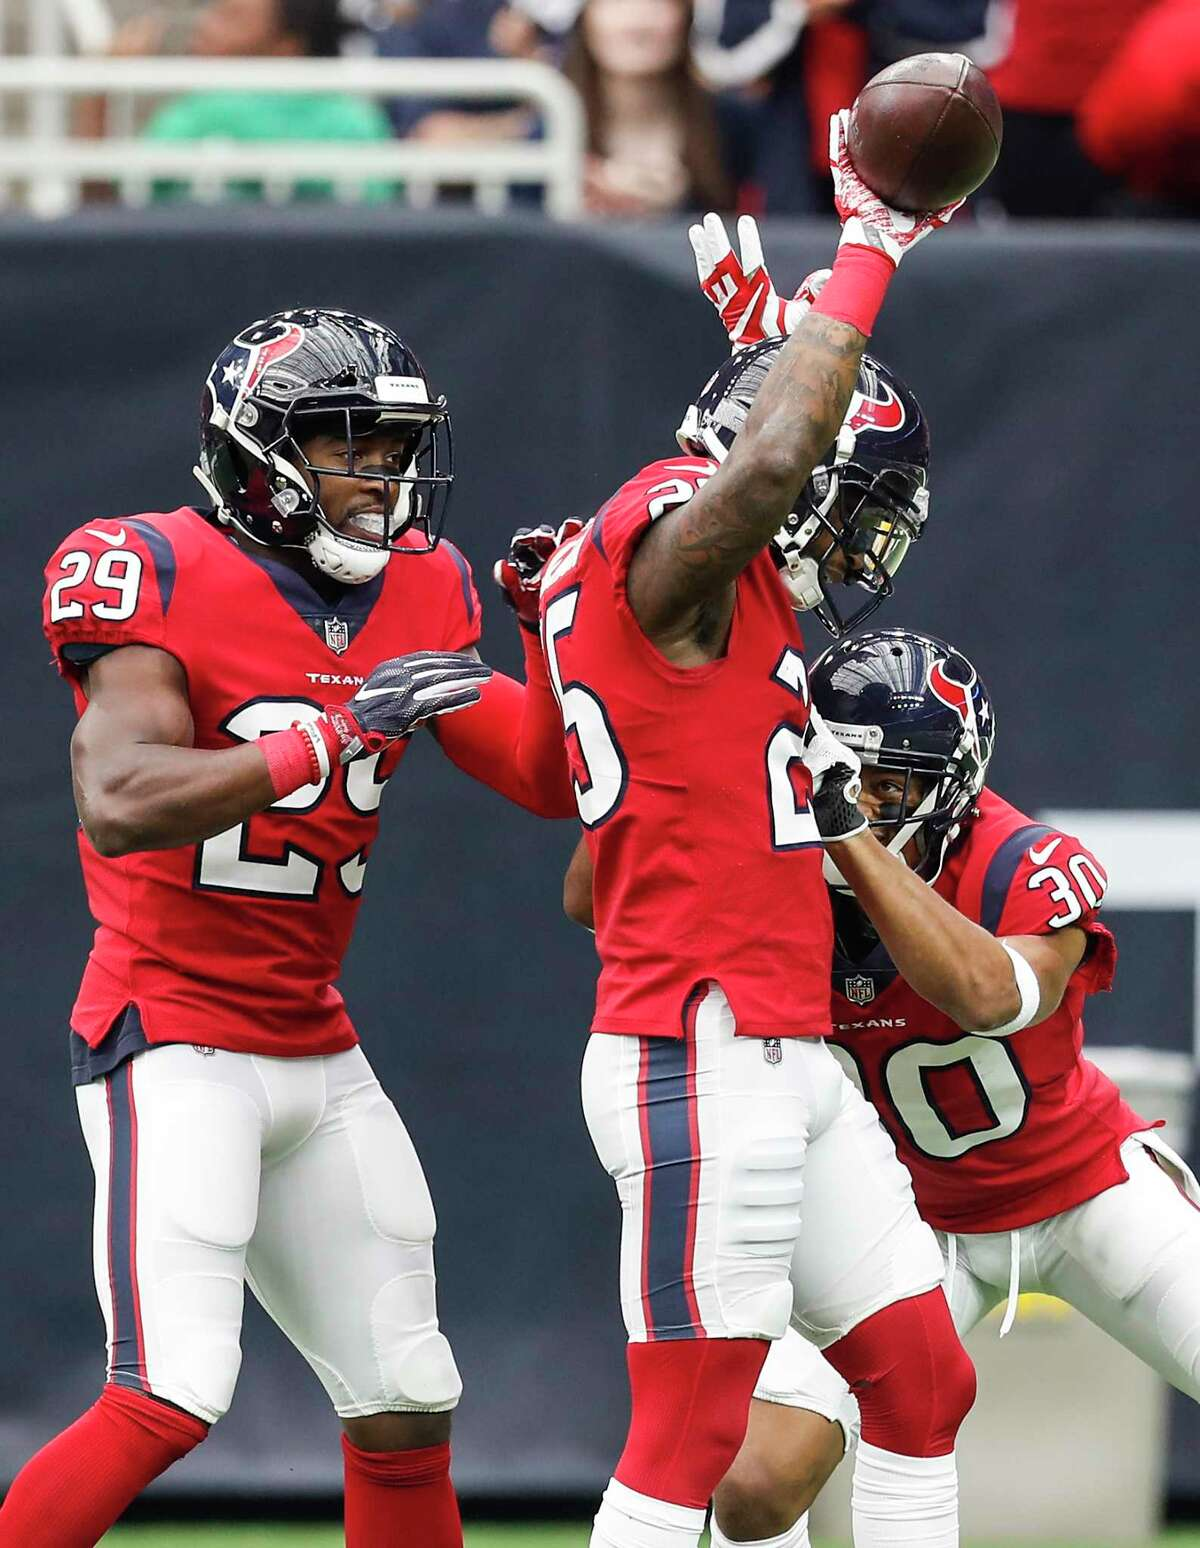 Houston Texans defensive backs Kareem Jackson (25), Andre Hal (29) and Kevin Johnson (30) celebrate Jackson's interception of a pass by San Francisco 49ers quarterback Jimmy Garoppolo during the first quarter of an NFL football game at NRG Stadium on Sunday, Dec. 10, 2017, in Houston.